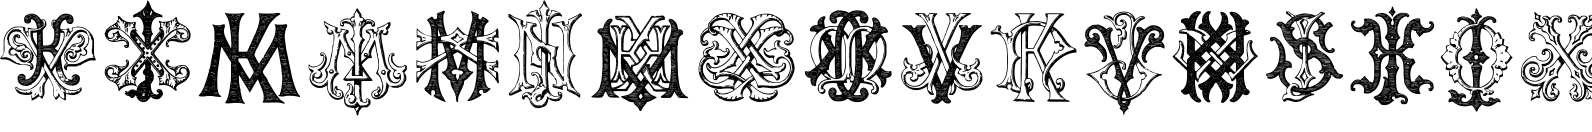 Intellecta Monograms IZKX Font